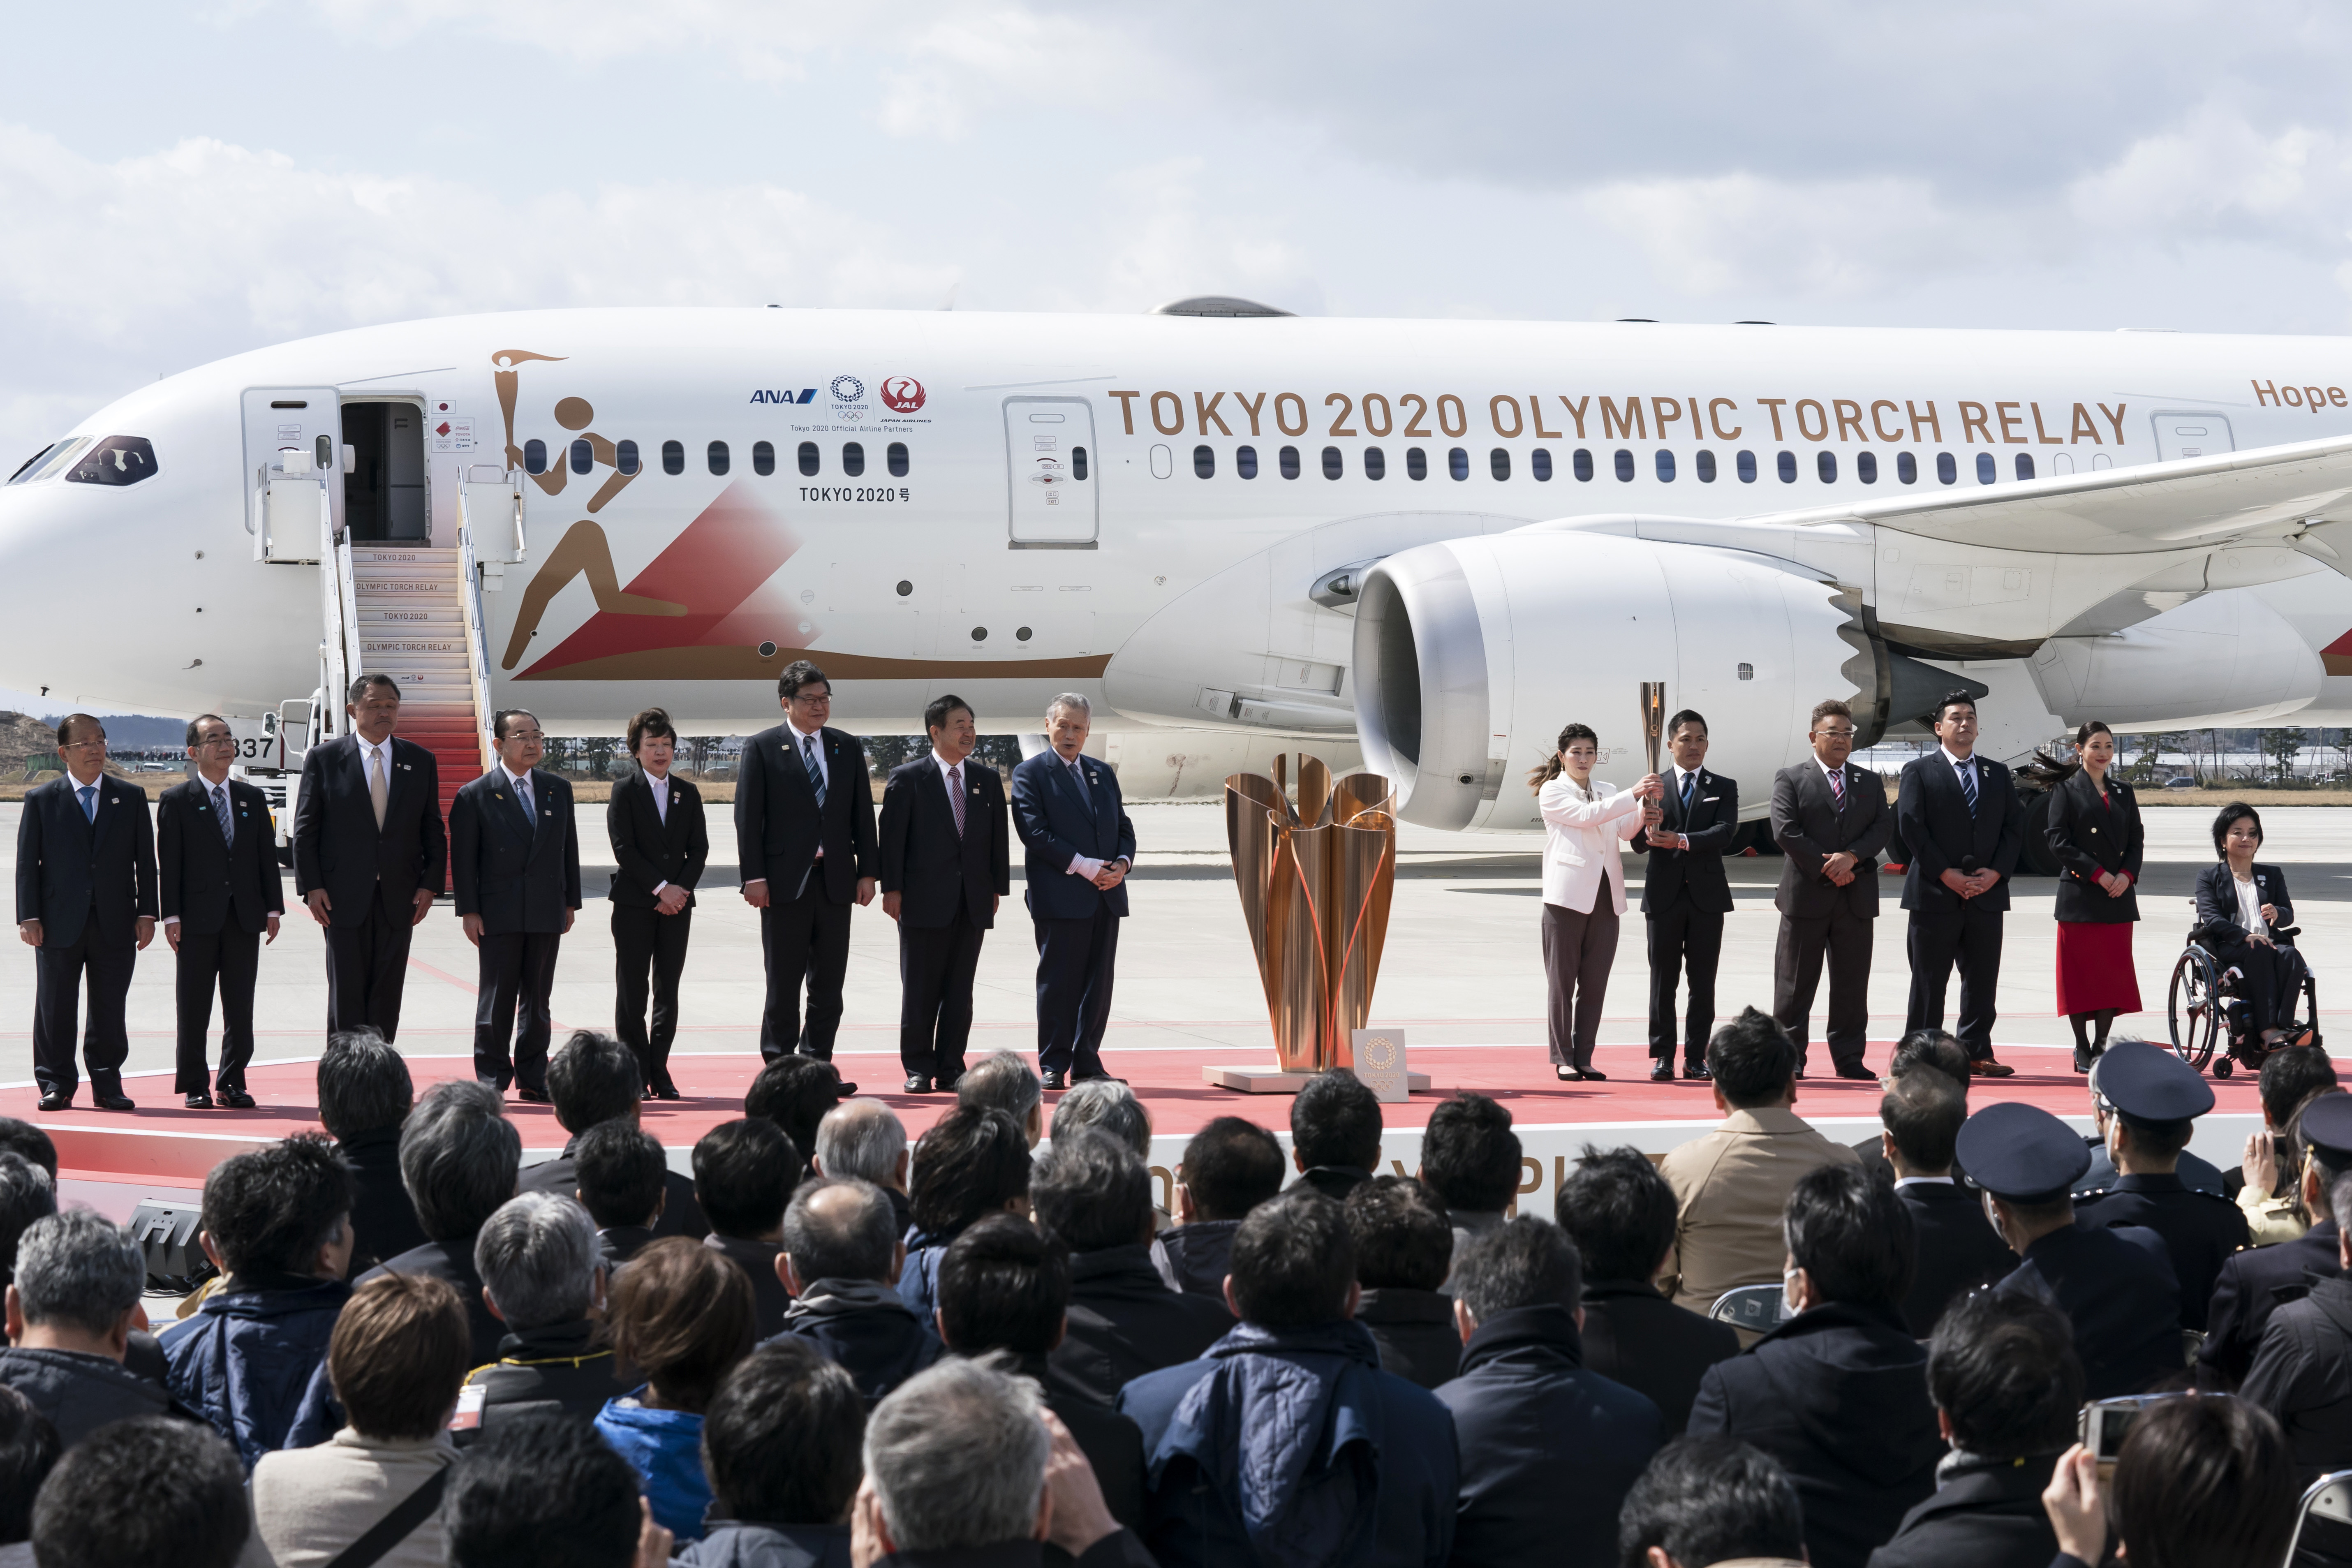 Olympic representatives attend the Tokyo 2020 Olympic Games Torch Arrival Ceremony in Matsushima, Miyagi, on Friday.